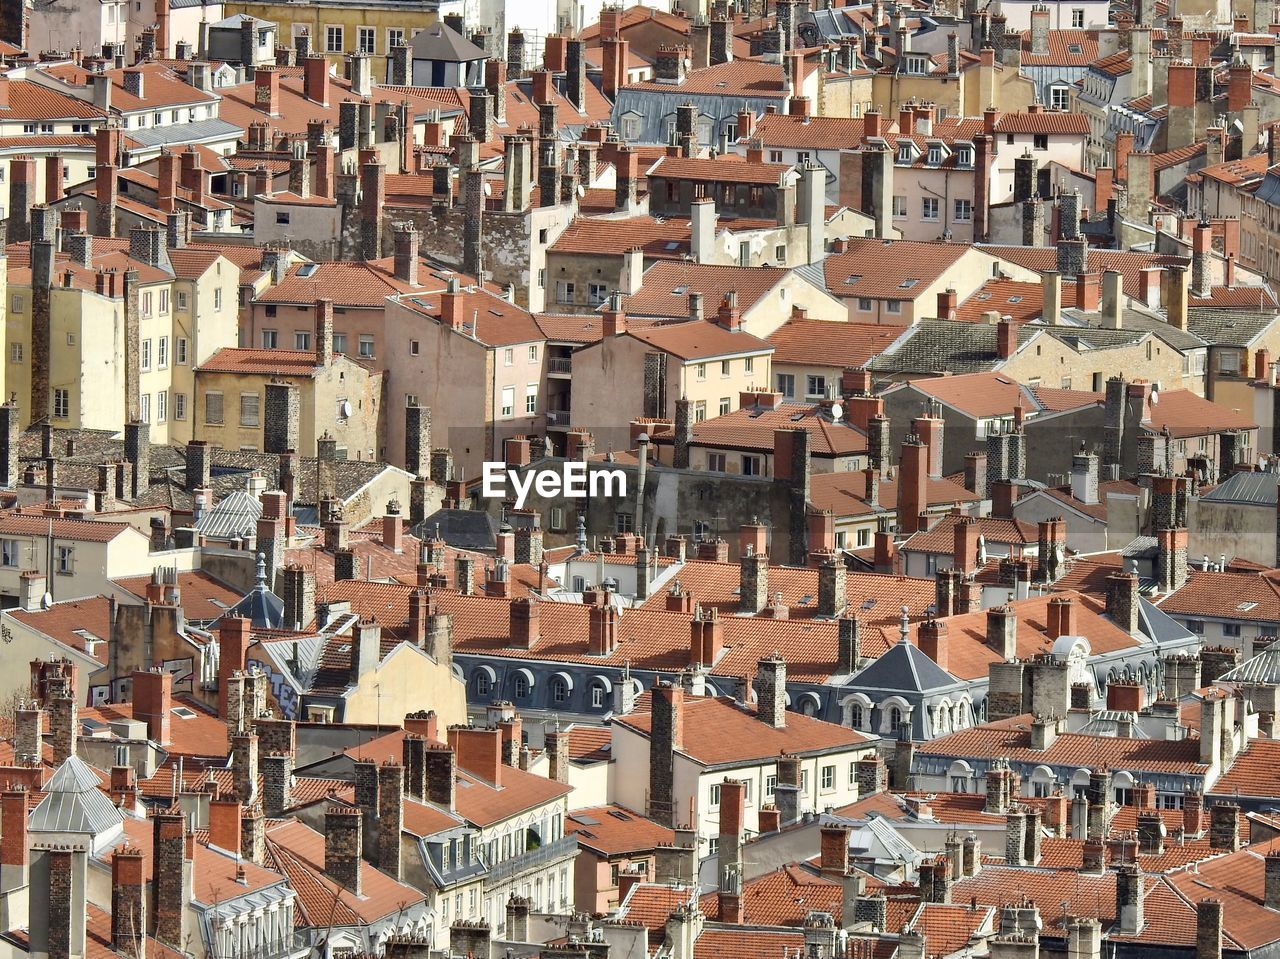 architecture, building exterior, residential district, building, built structure, city, crowded, crowd, roof, house, full frame, community, day, high angle view, backgrounds, cityscape, town, townscape, outdoors, roof tile, apartment